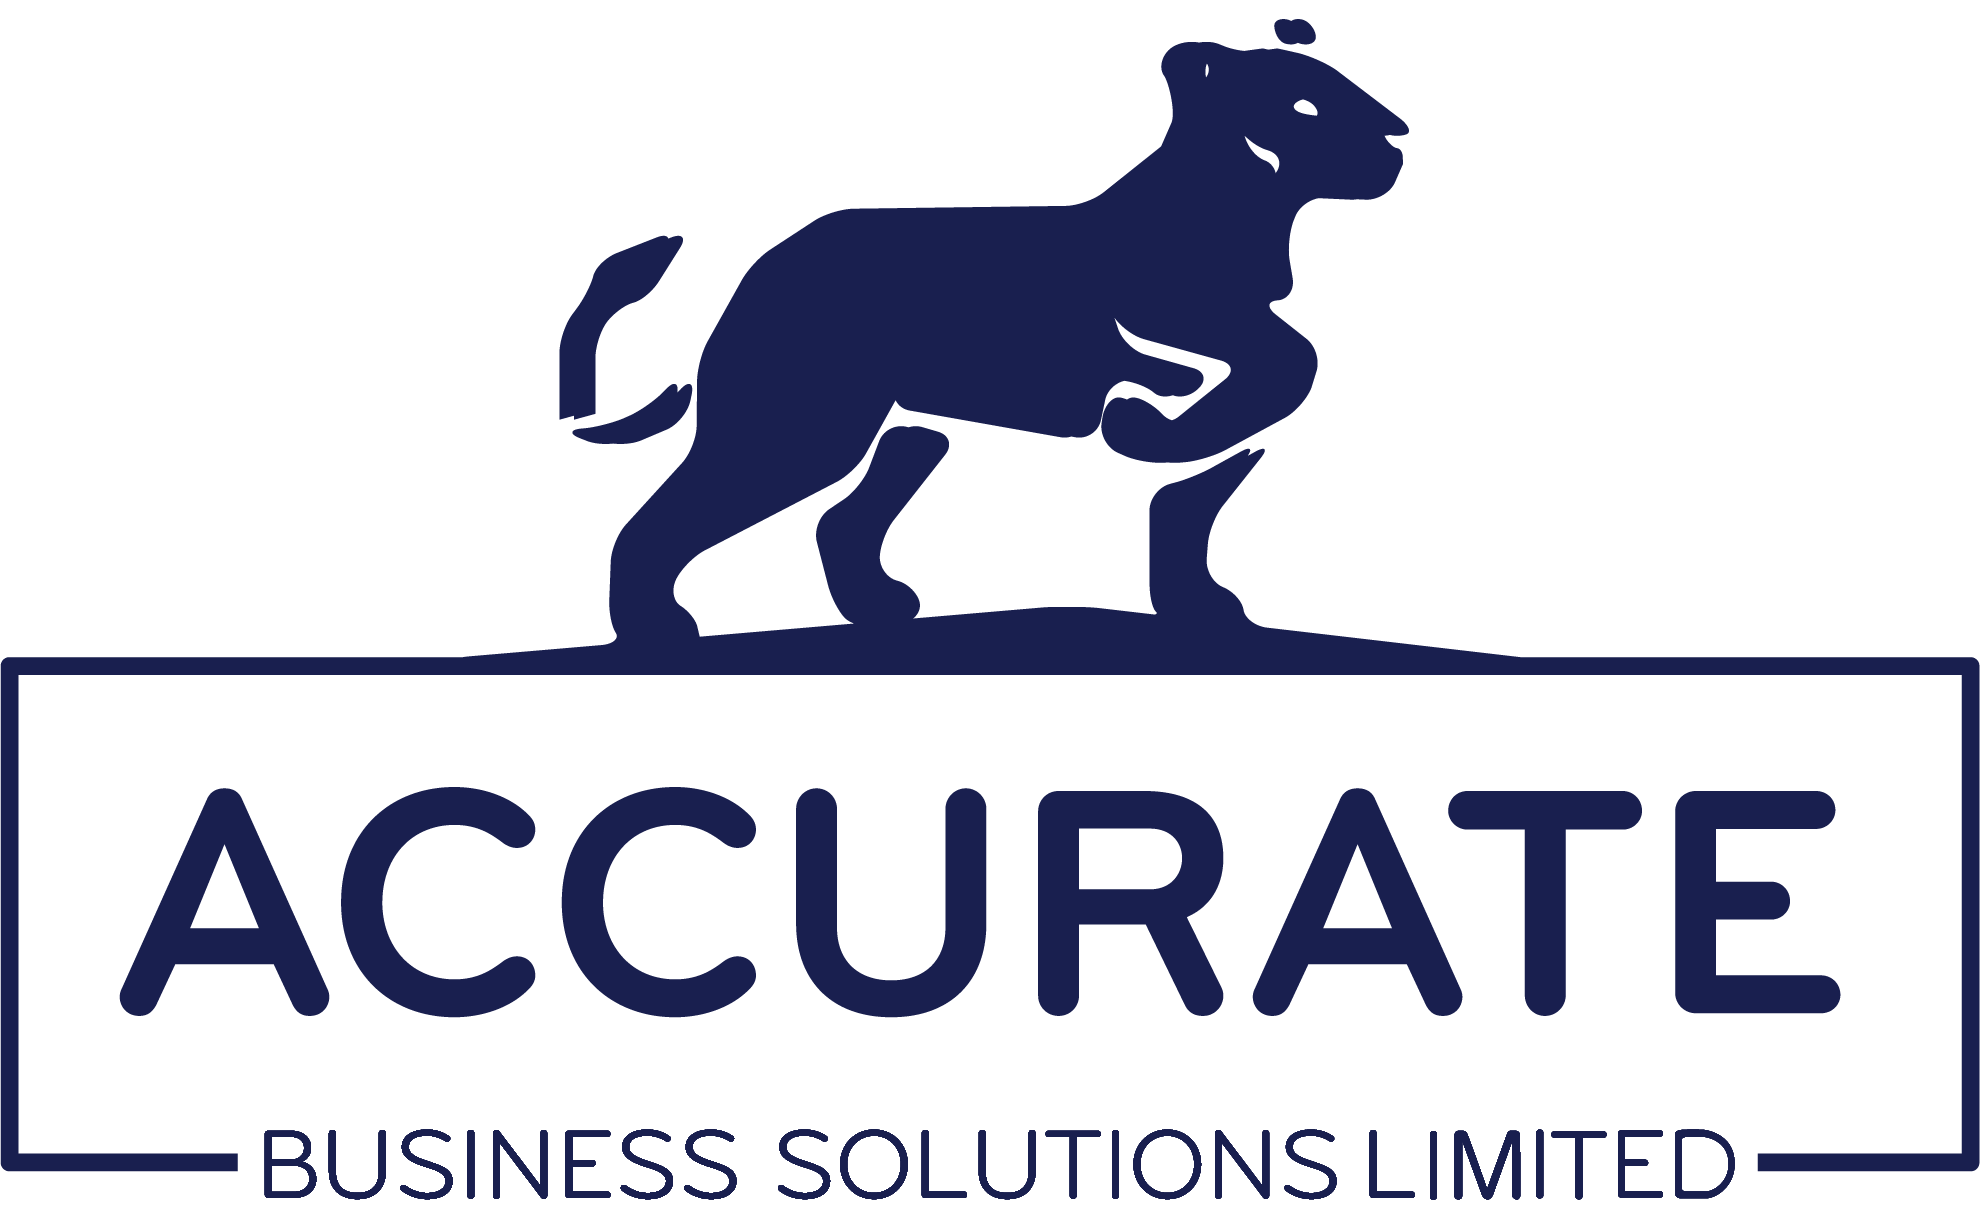 Accurate Business Solutions Limited